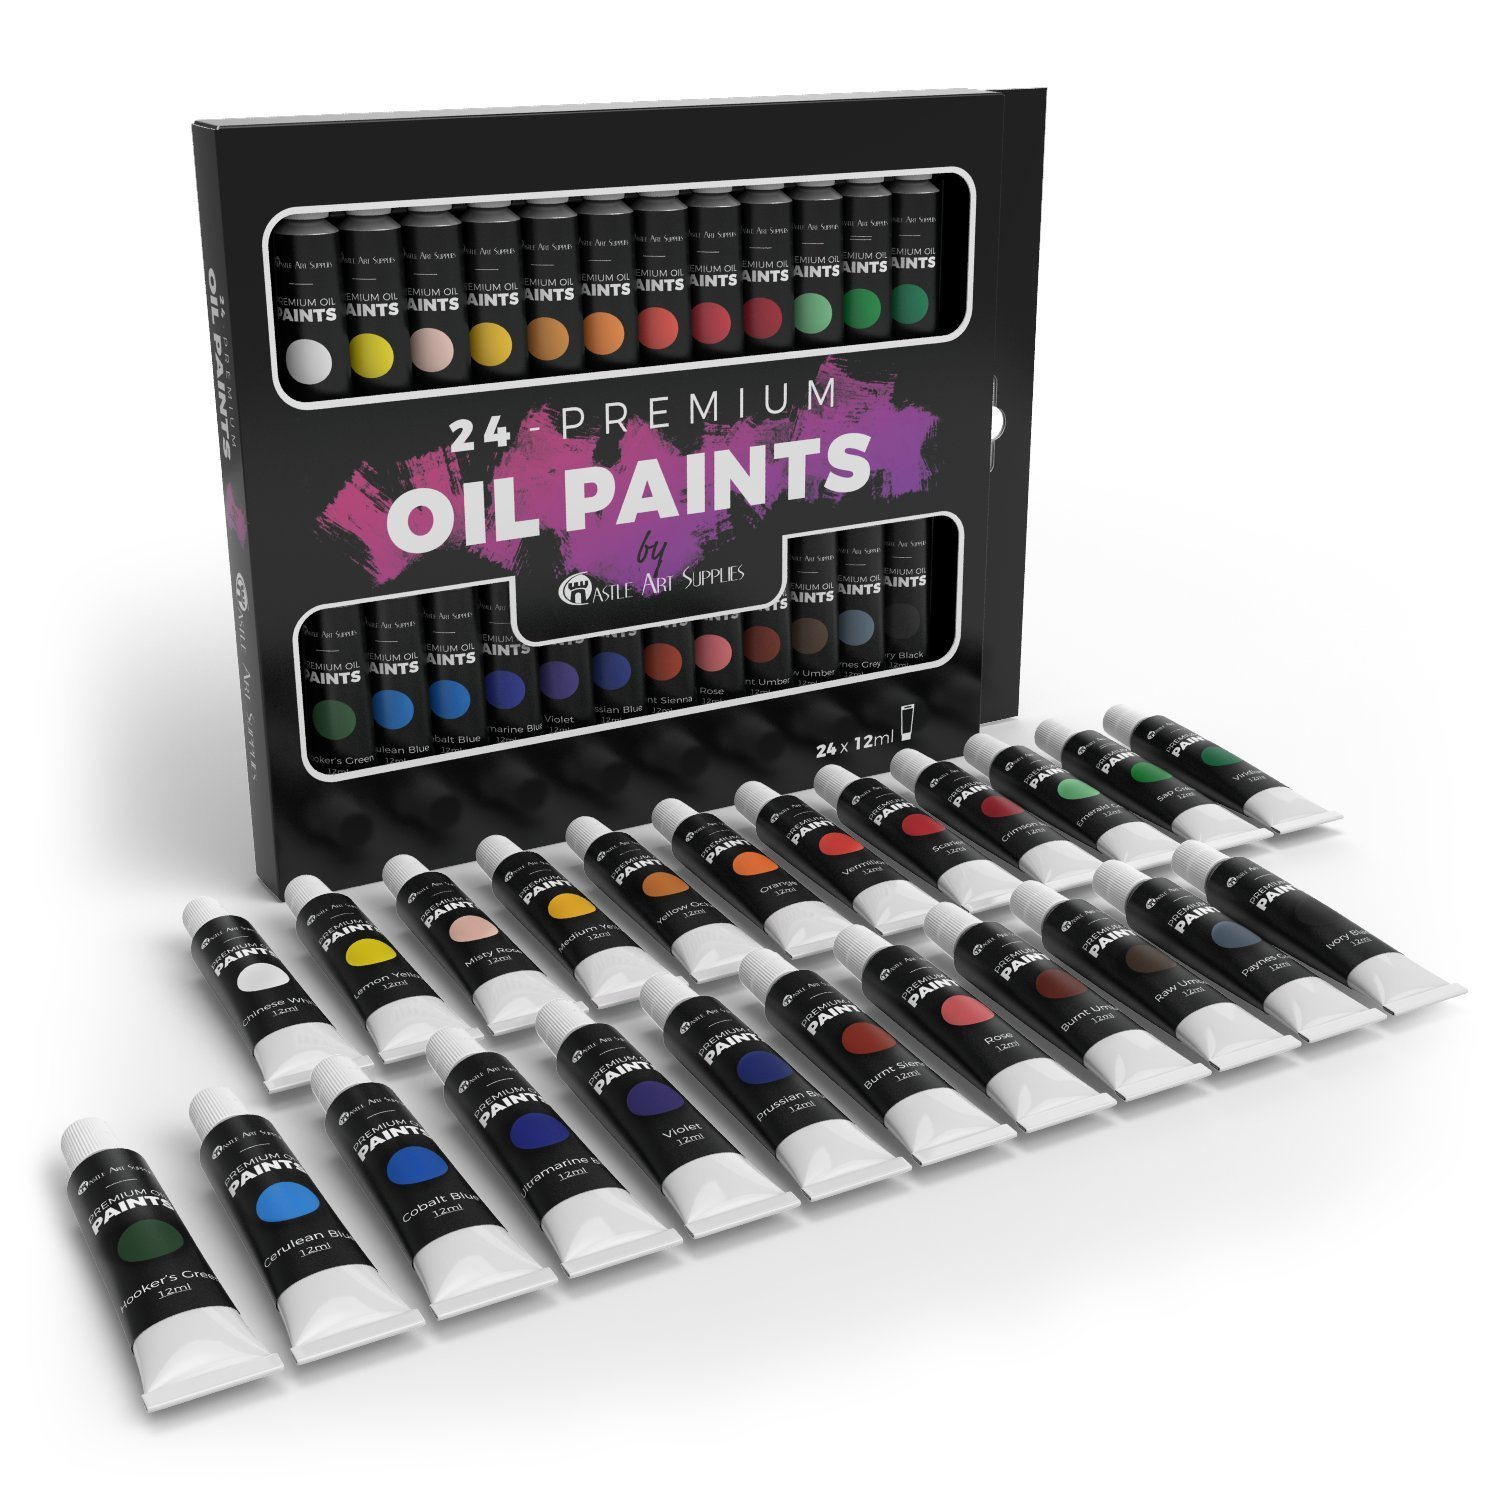 Castle Art Supplies Oil Paint Set Perfect for Professional and Beginners - Extend Your Painting Supplies to Include These 24 Richly Pigmented and Vivid Oil Colors Suitable for All Canvas